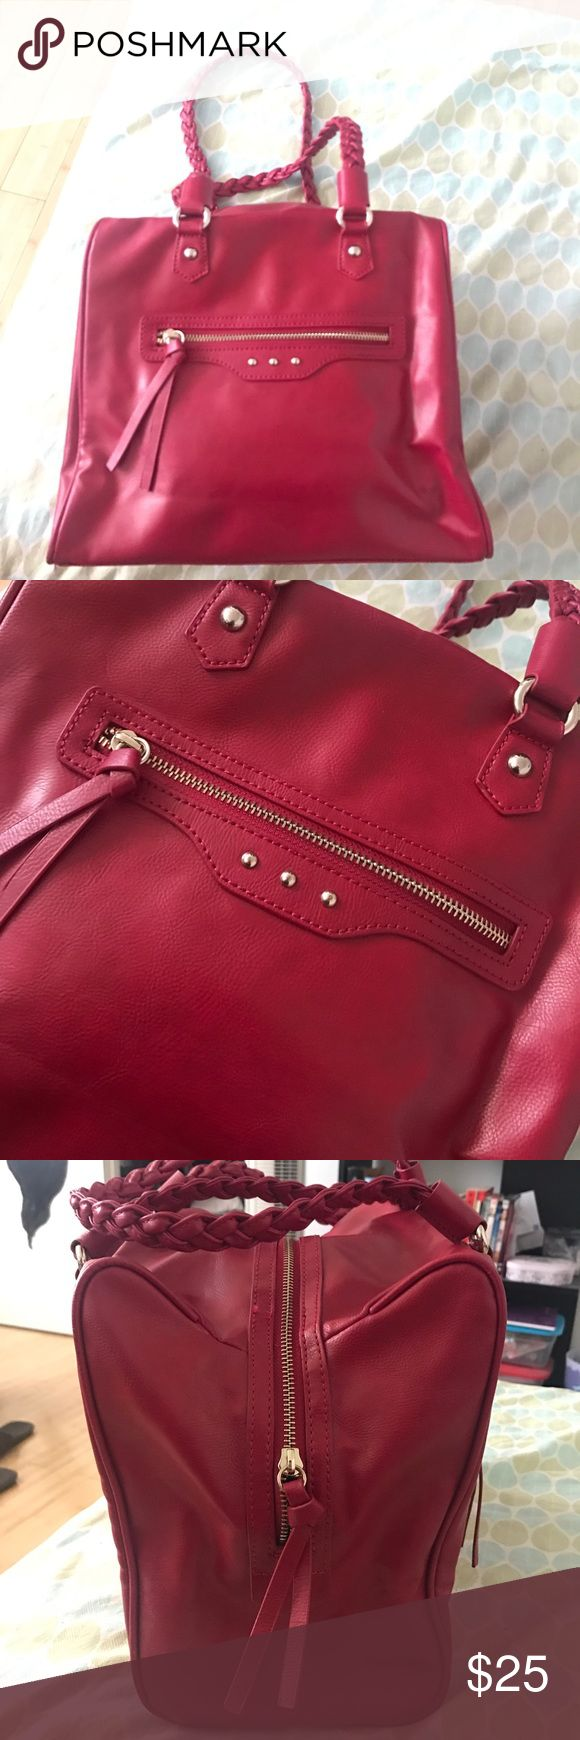 Red Deena & Ozzy hand bag Beautiful red Deena & Ozzy handbag only been worn once as you can see in the photos it looks brand new! Very spacious bag with detailed straps. Deena & Ozzy Bags Shoulder Bags